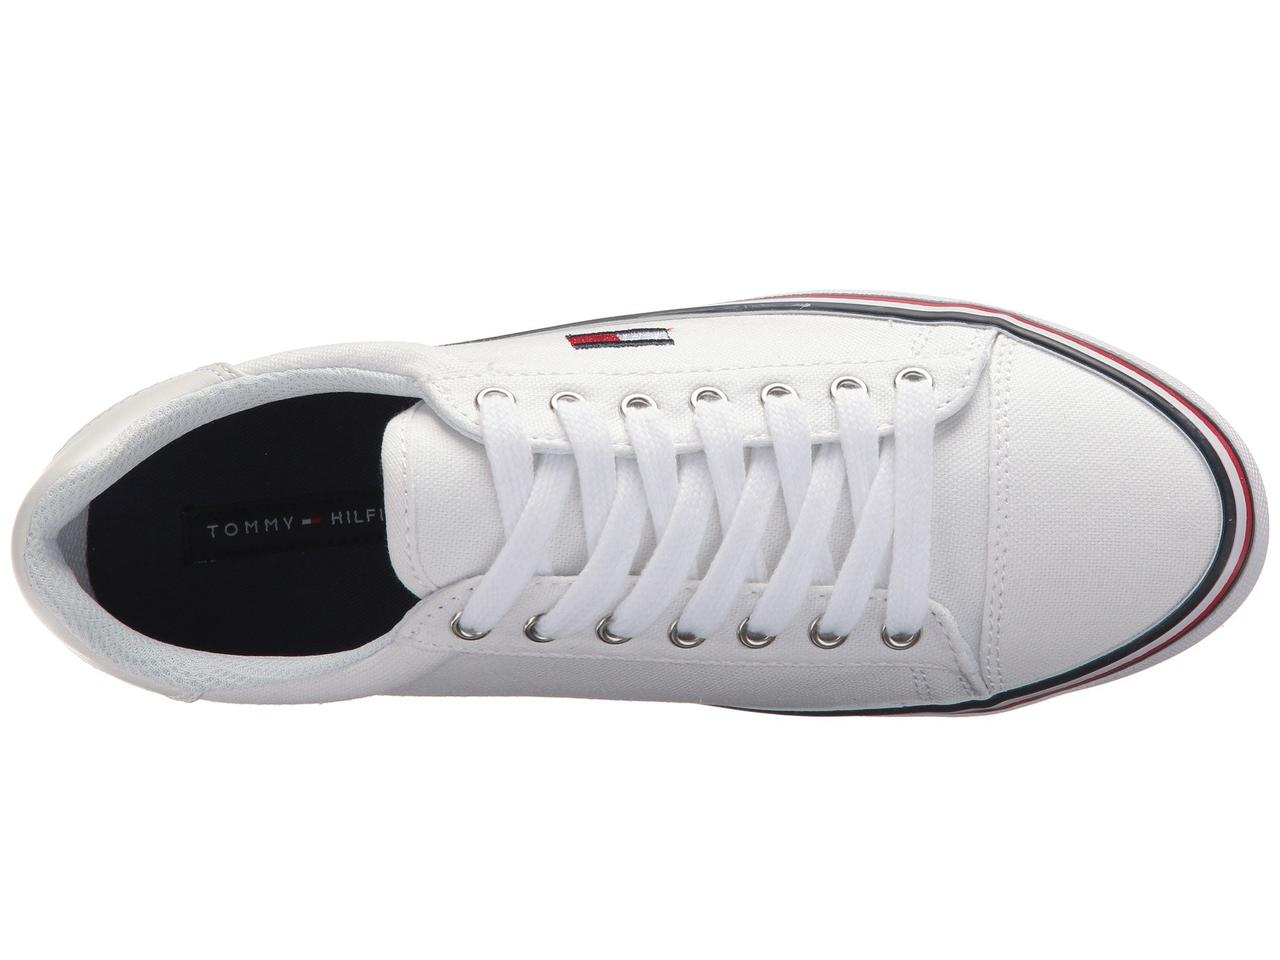 Кроссовки Кеды (Оригинал) Tommy Hilfiger Fressian White Multi Fabric ... 0def680d8c883